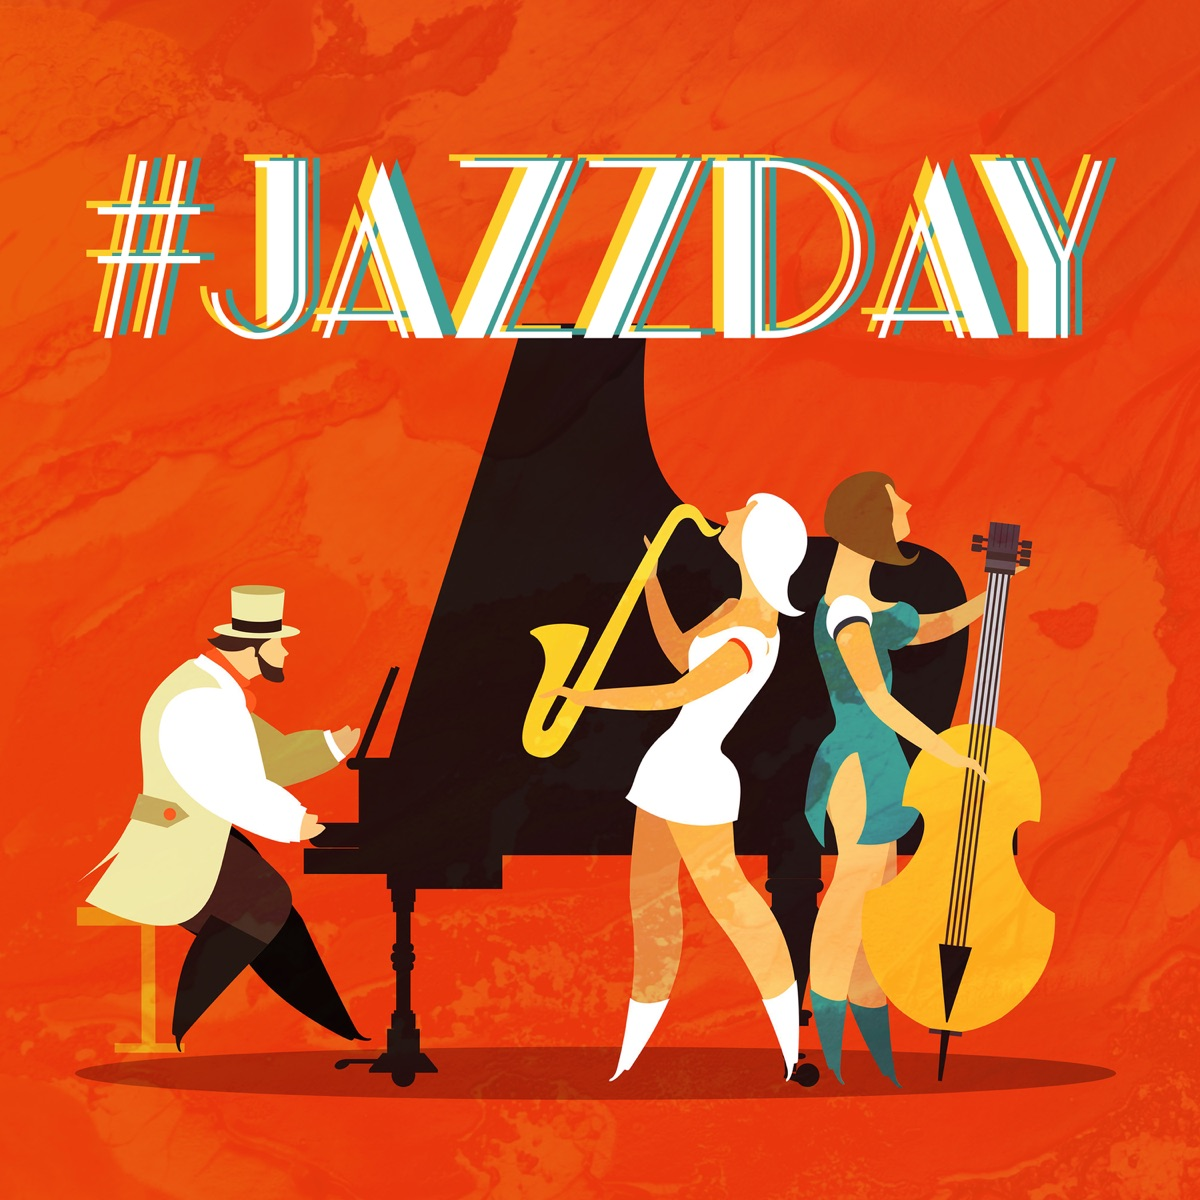 JazzDay: 50 Special Selected Instrumental Jazz Music for